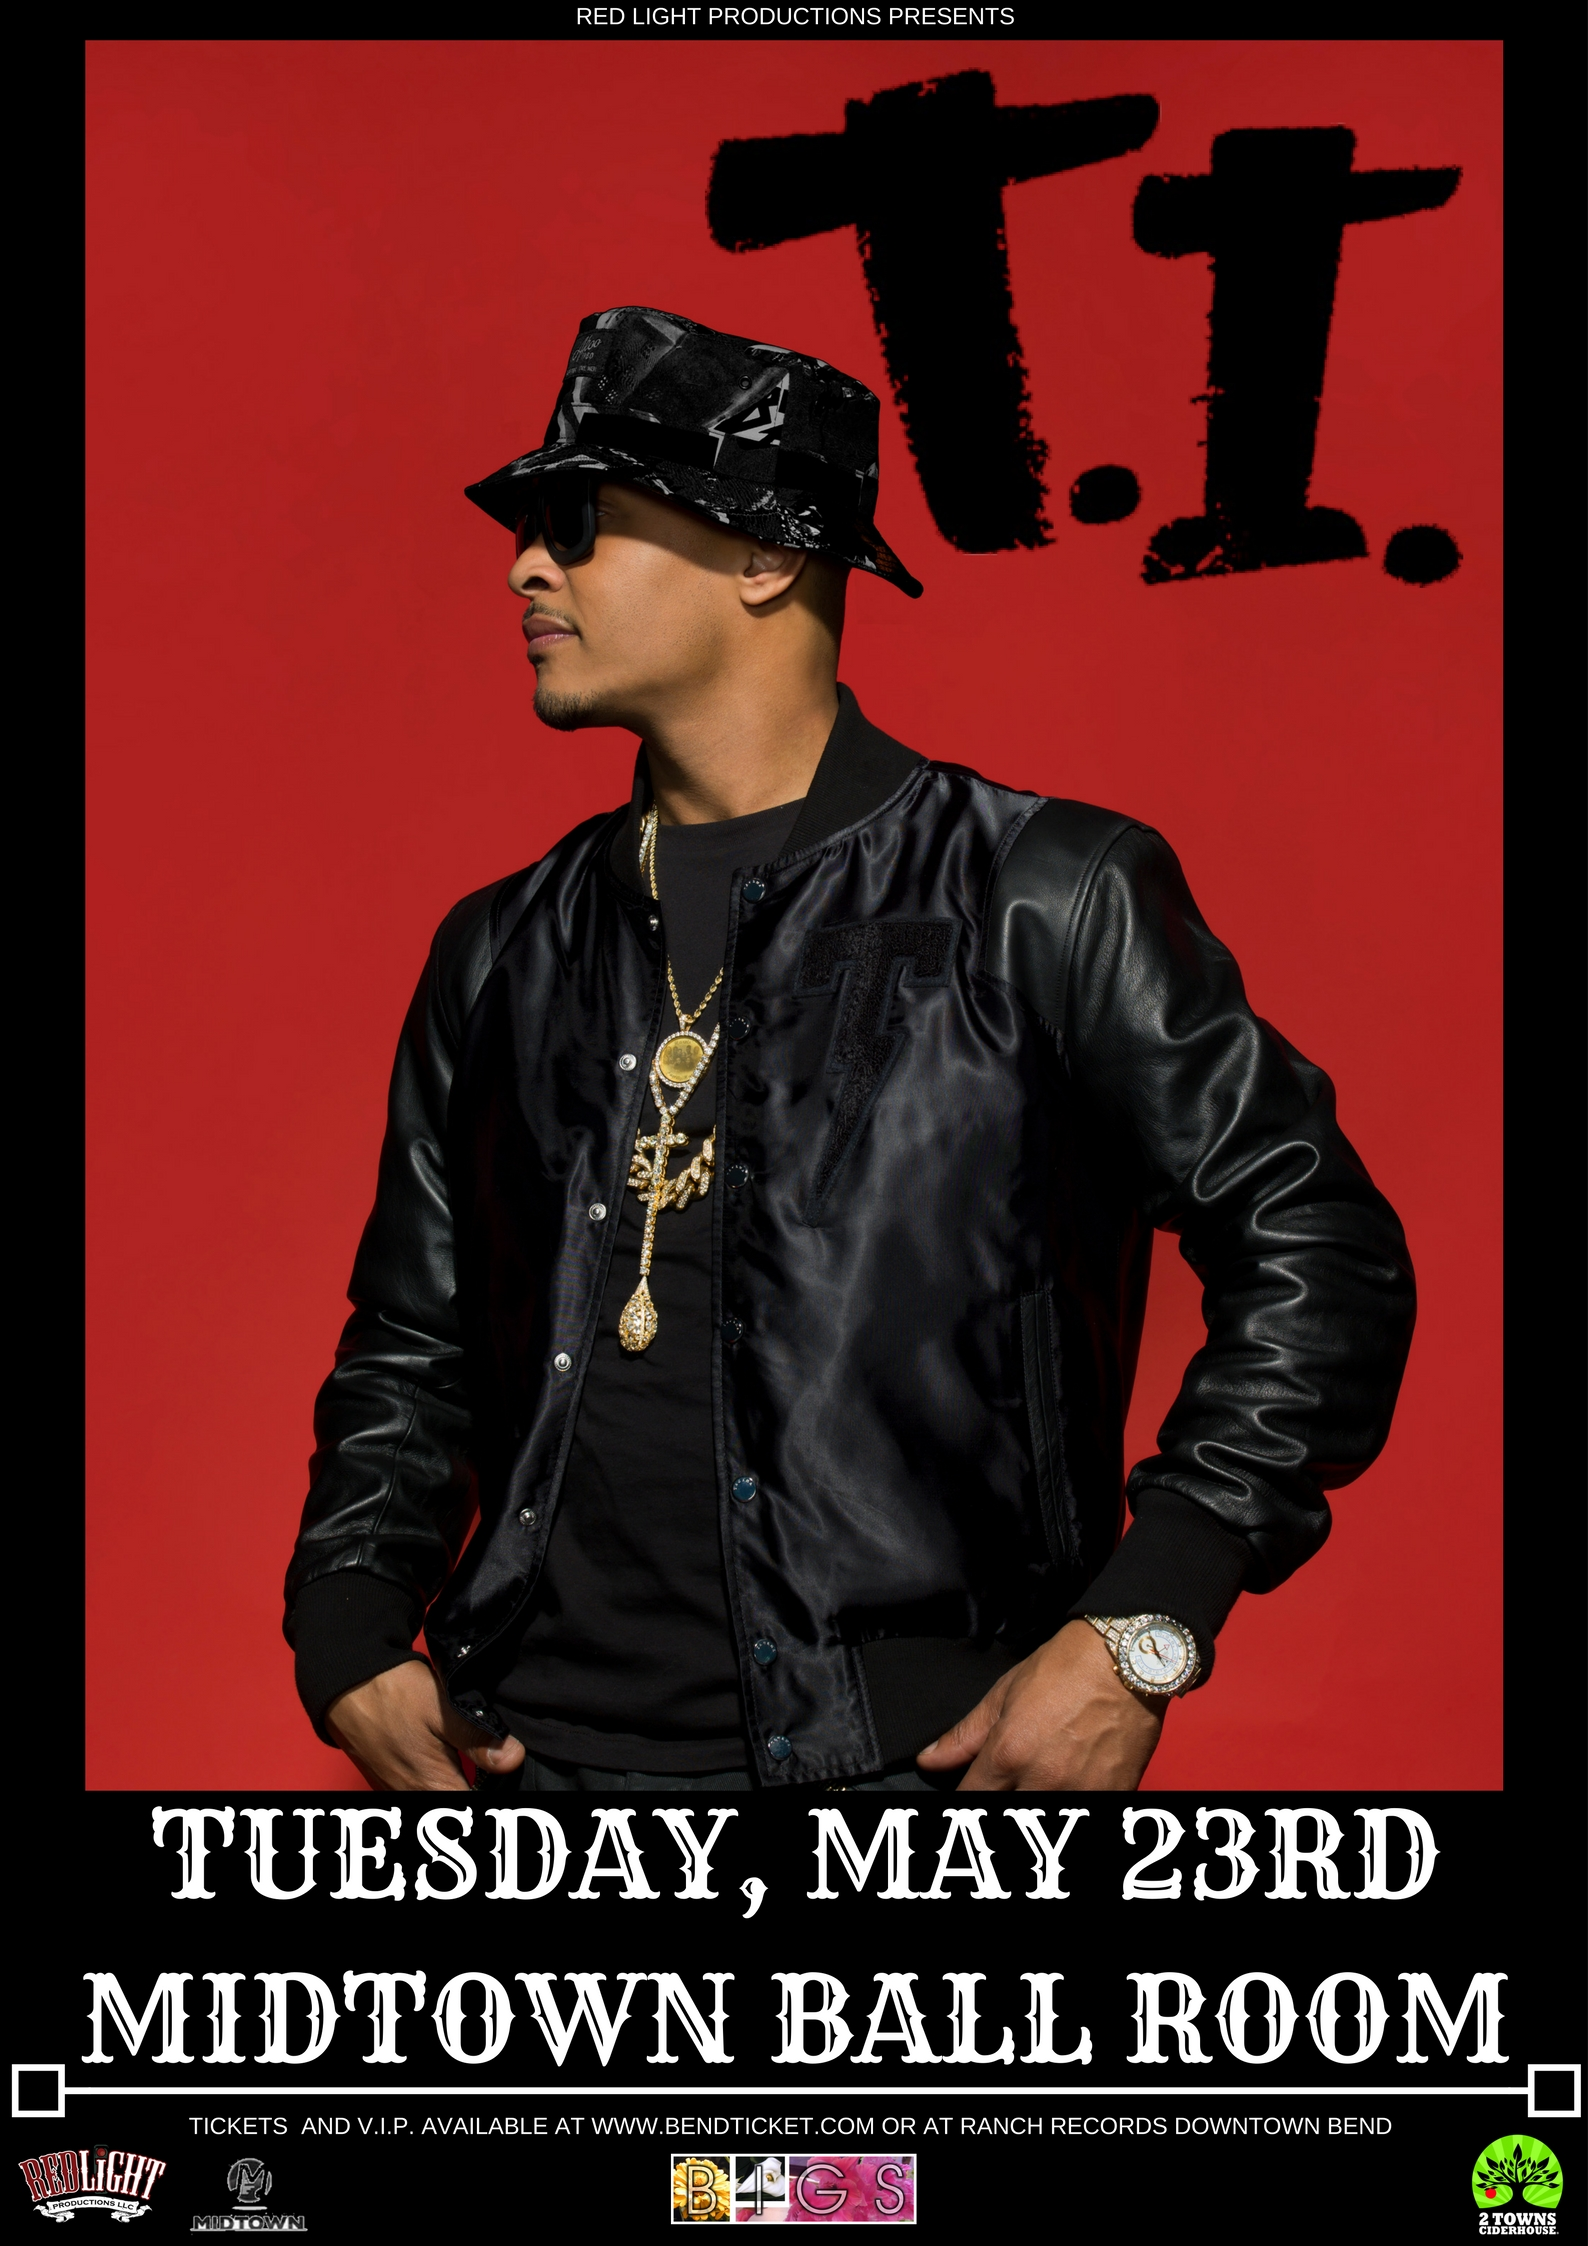 Ti On The Hustle Gang Tour Presented By Red Light Productions